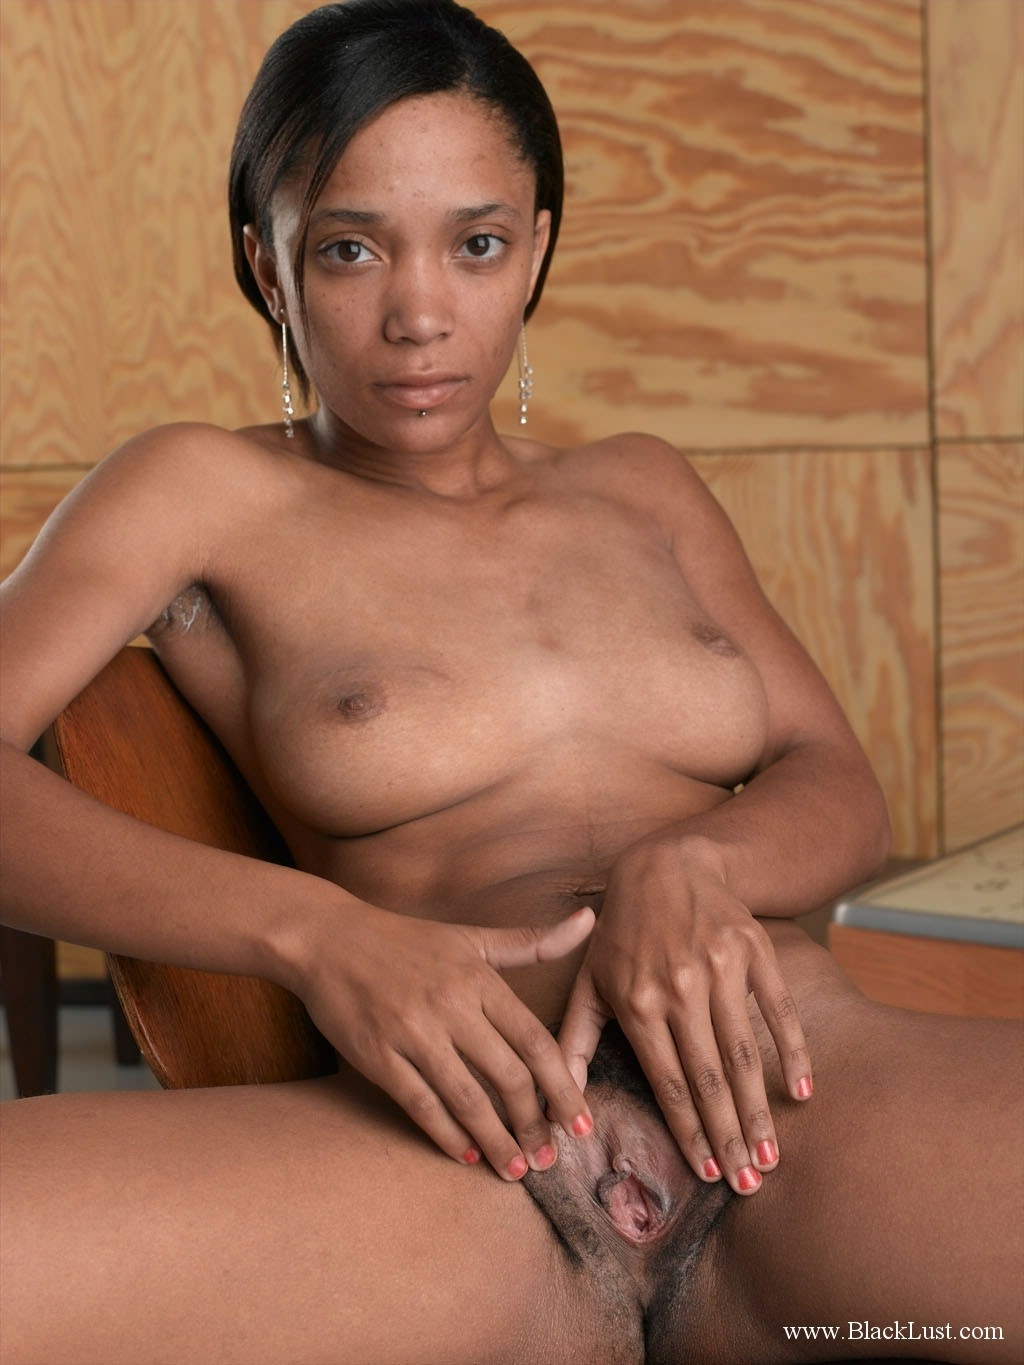 She gets instantly wet by da size of his dick interracial 4